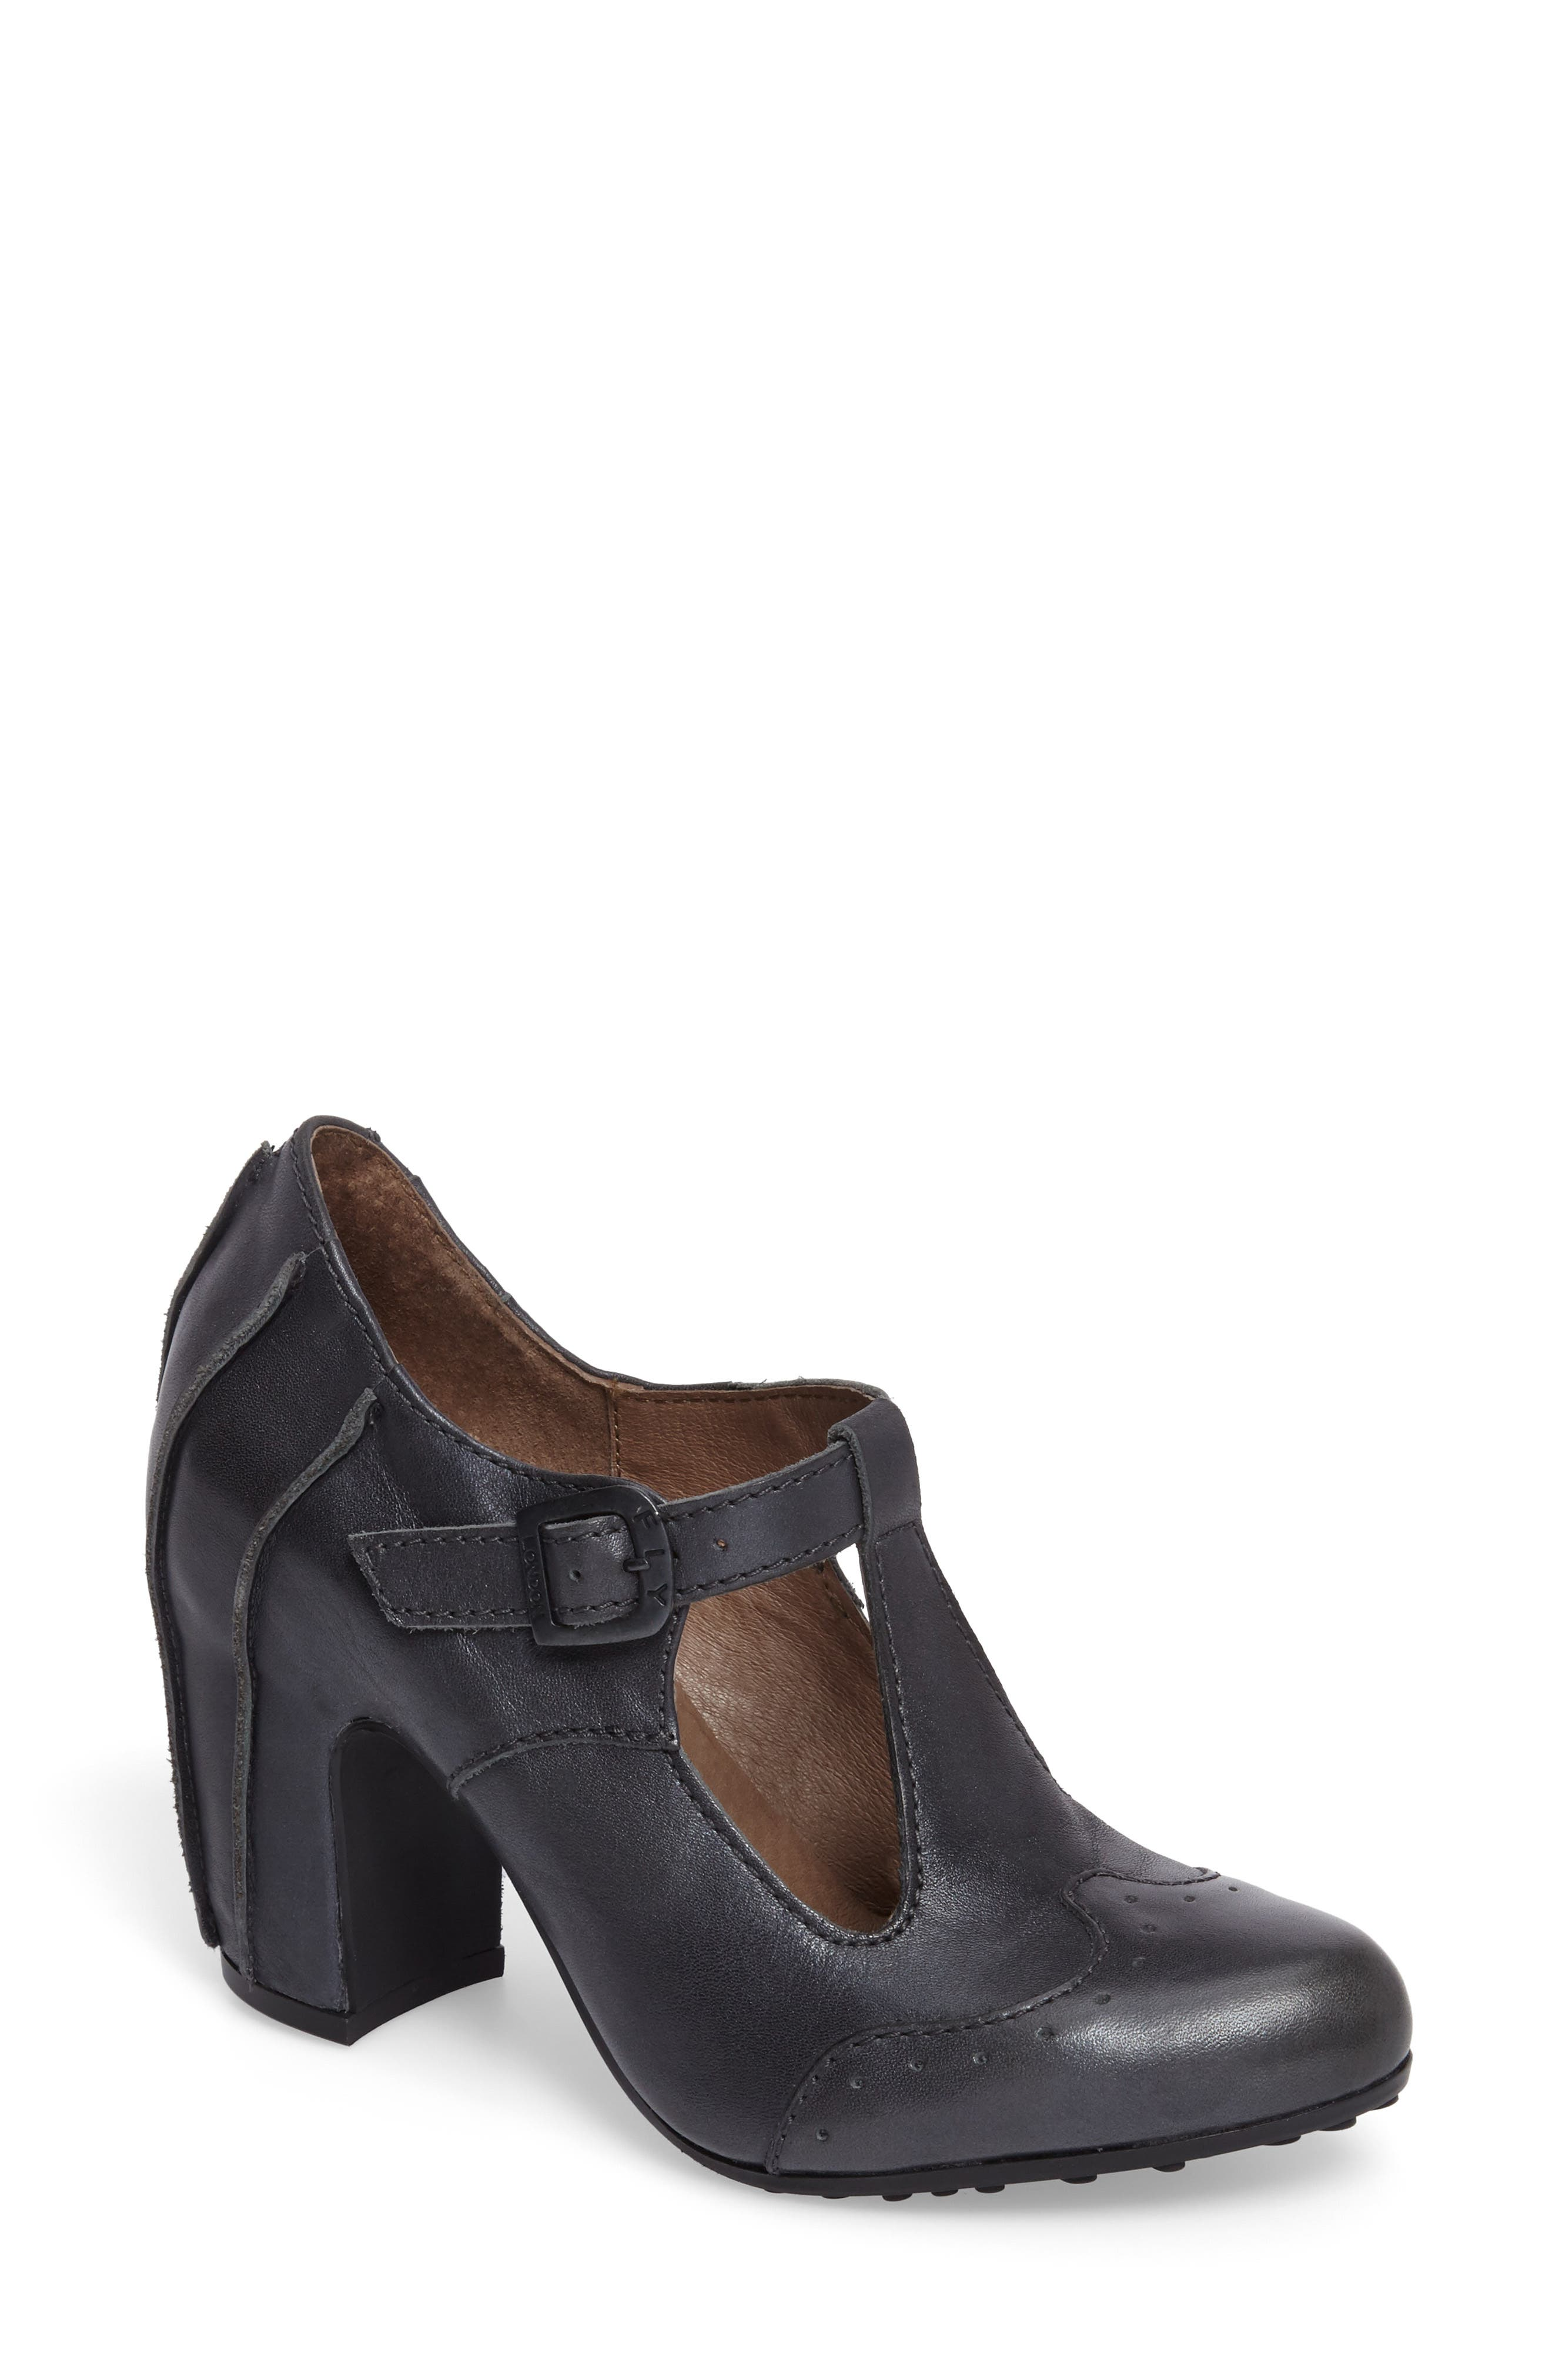 Alternate Image 1 Selected - Fly London Acer Pump (Women)